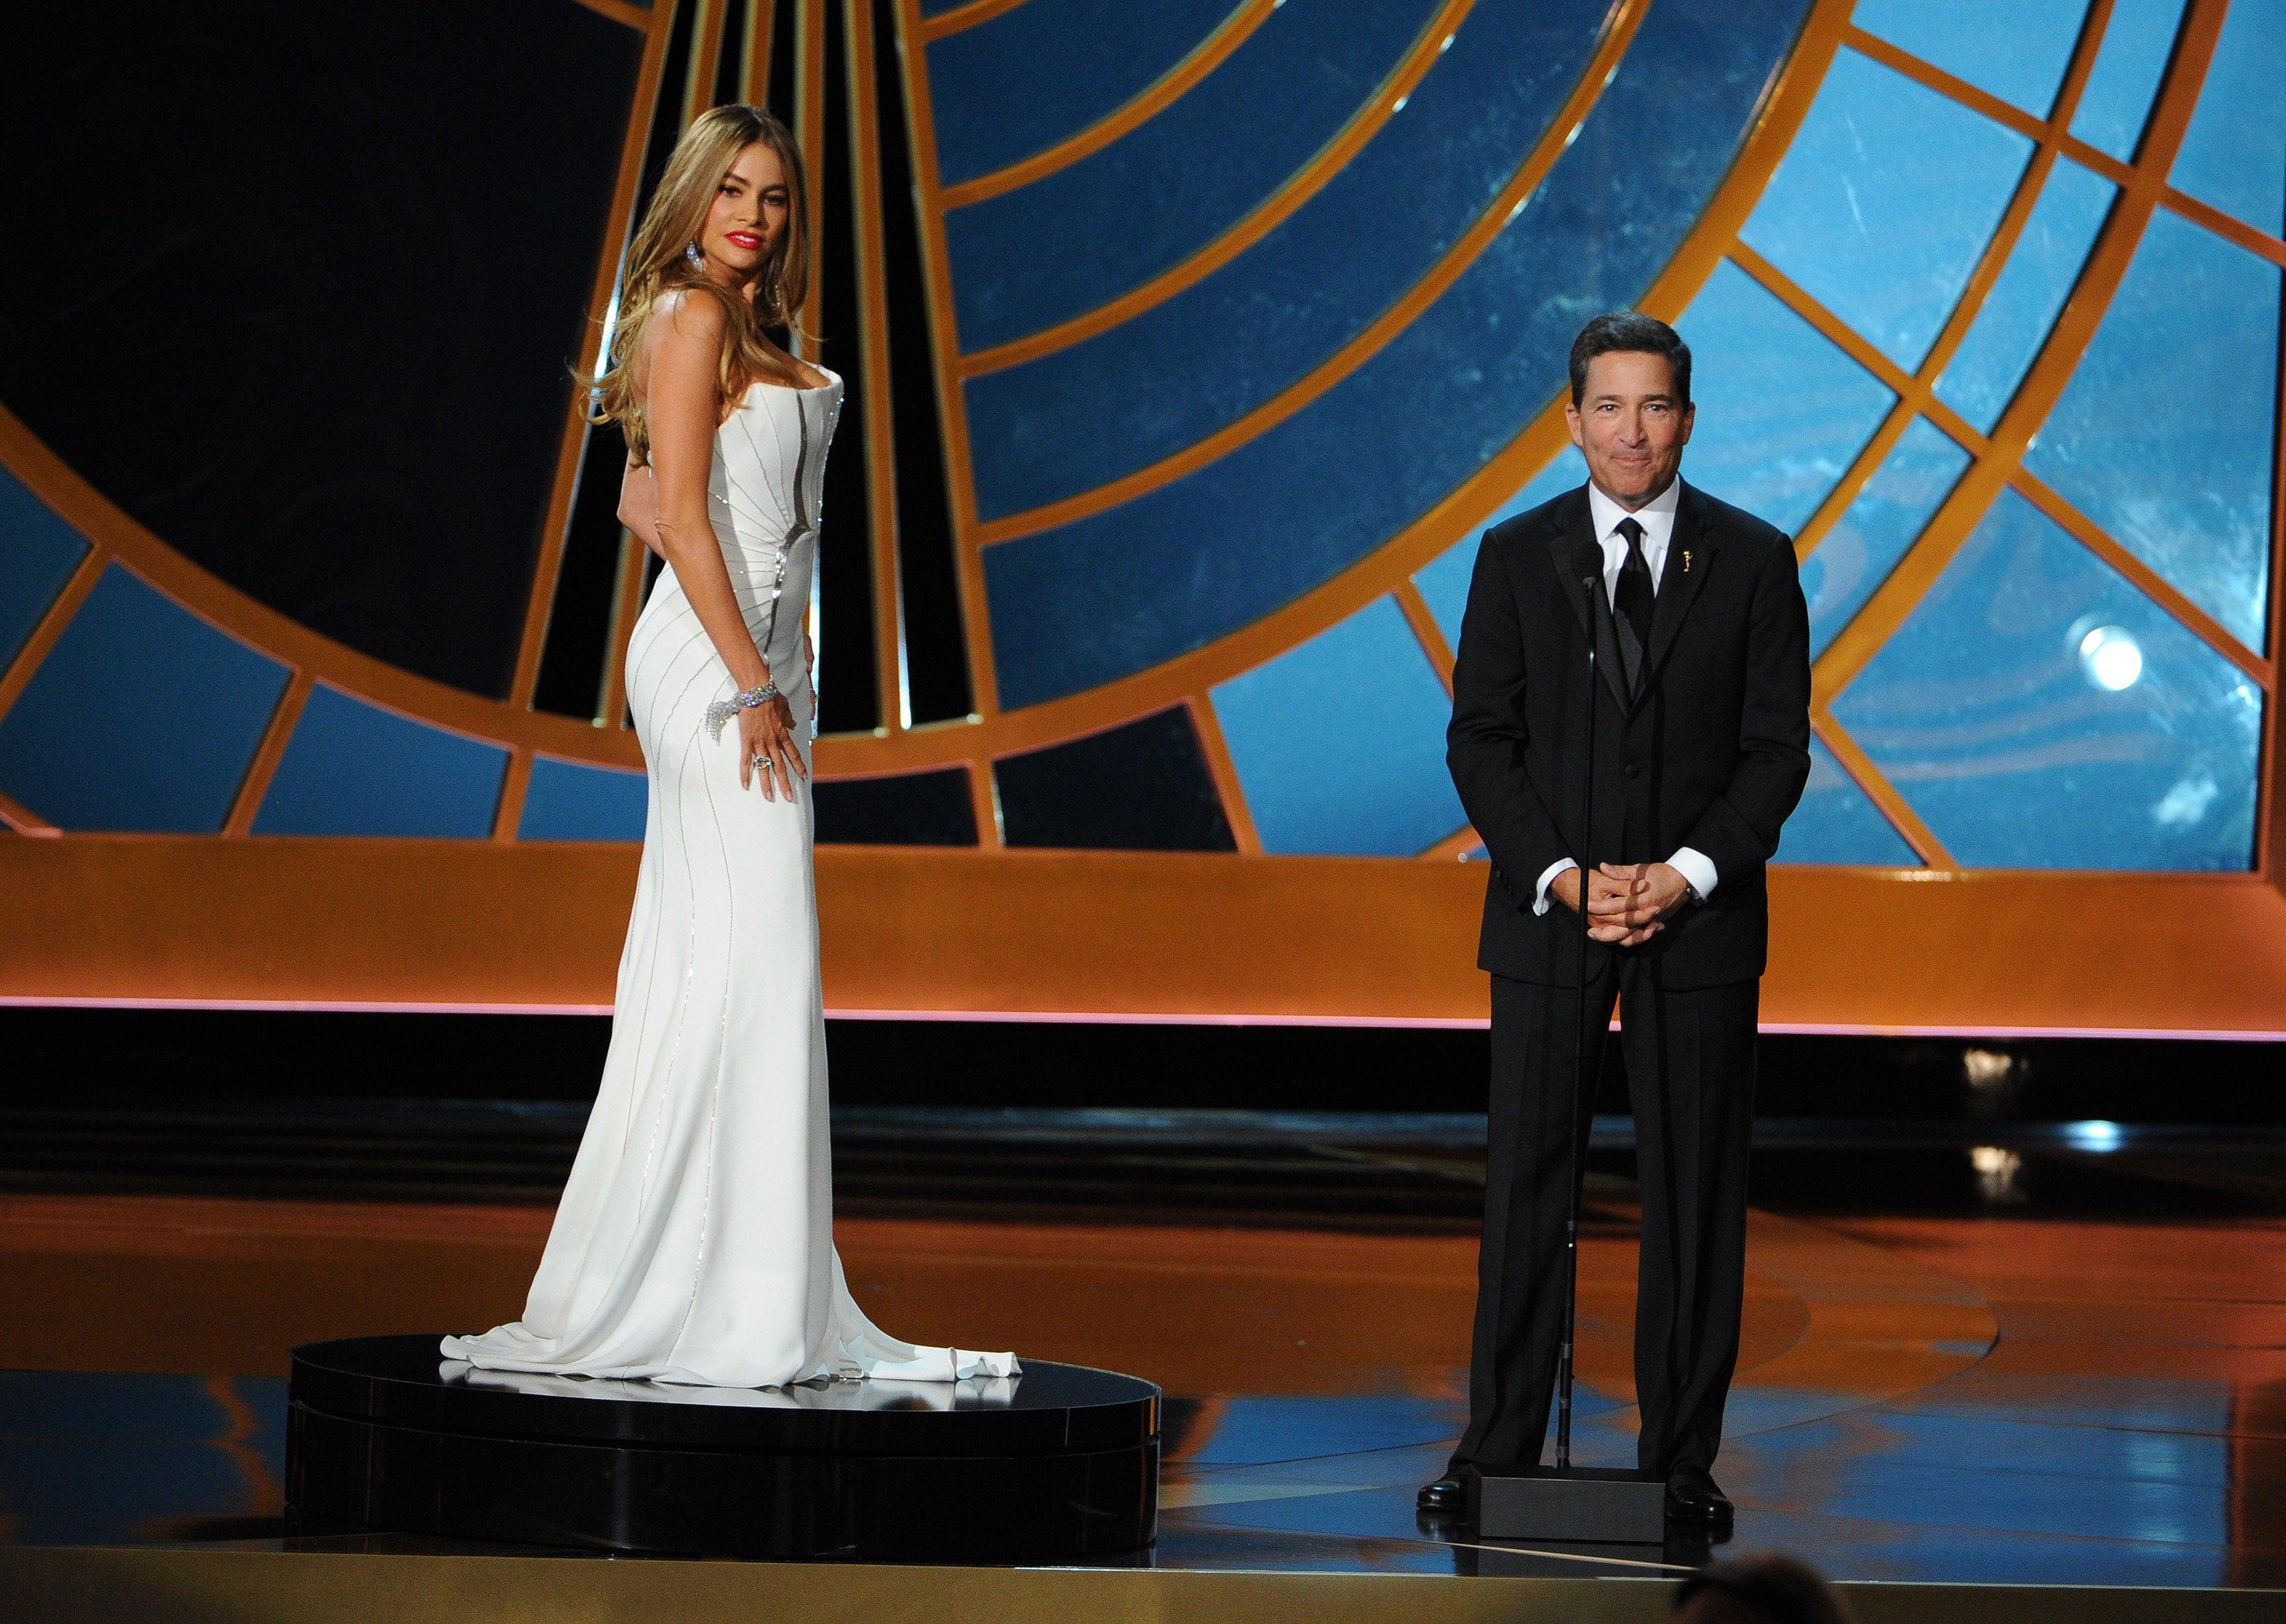 Sofia Vergara, left, and Television Academy CEO Bruce Rosenblum speak on stage at the 66th Primetime Emmy Awards at the Nokia Theatre L.A. Live on Monday, Aug. 25, 2014, in Los Angeles.